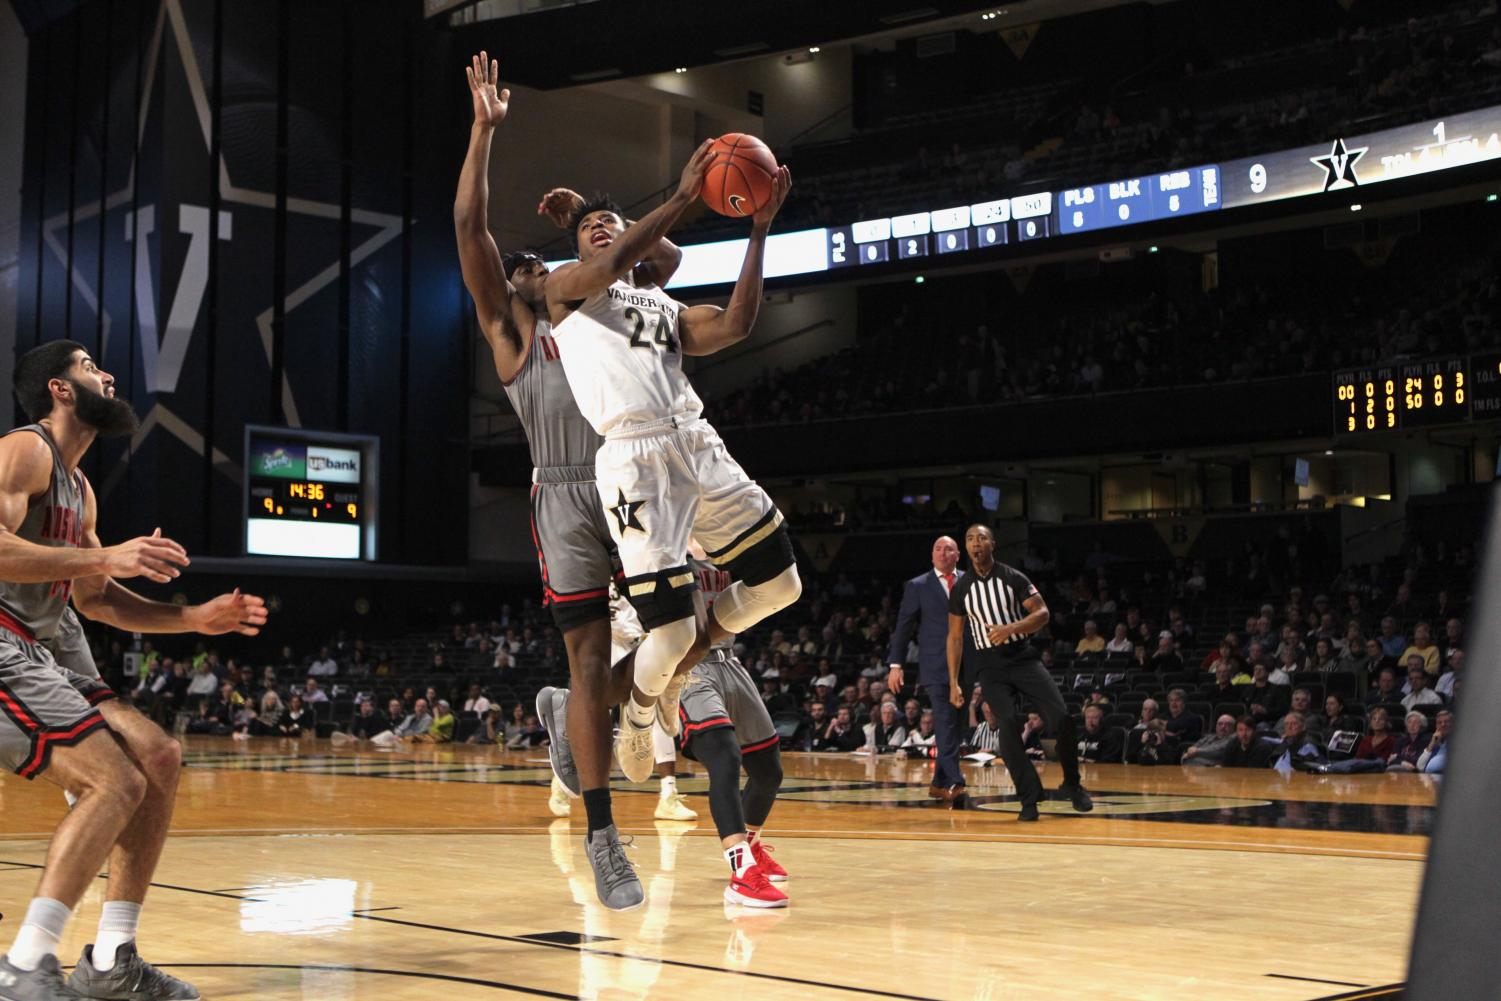 Aaron Nesmith finishes through traffic in Vanderbilt's 90-72 win over Austin Peay.